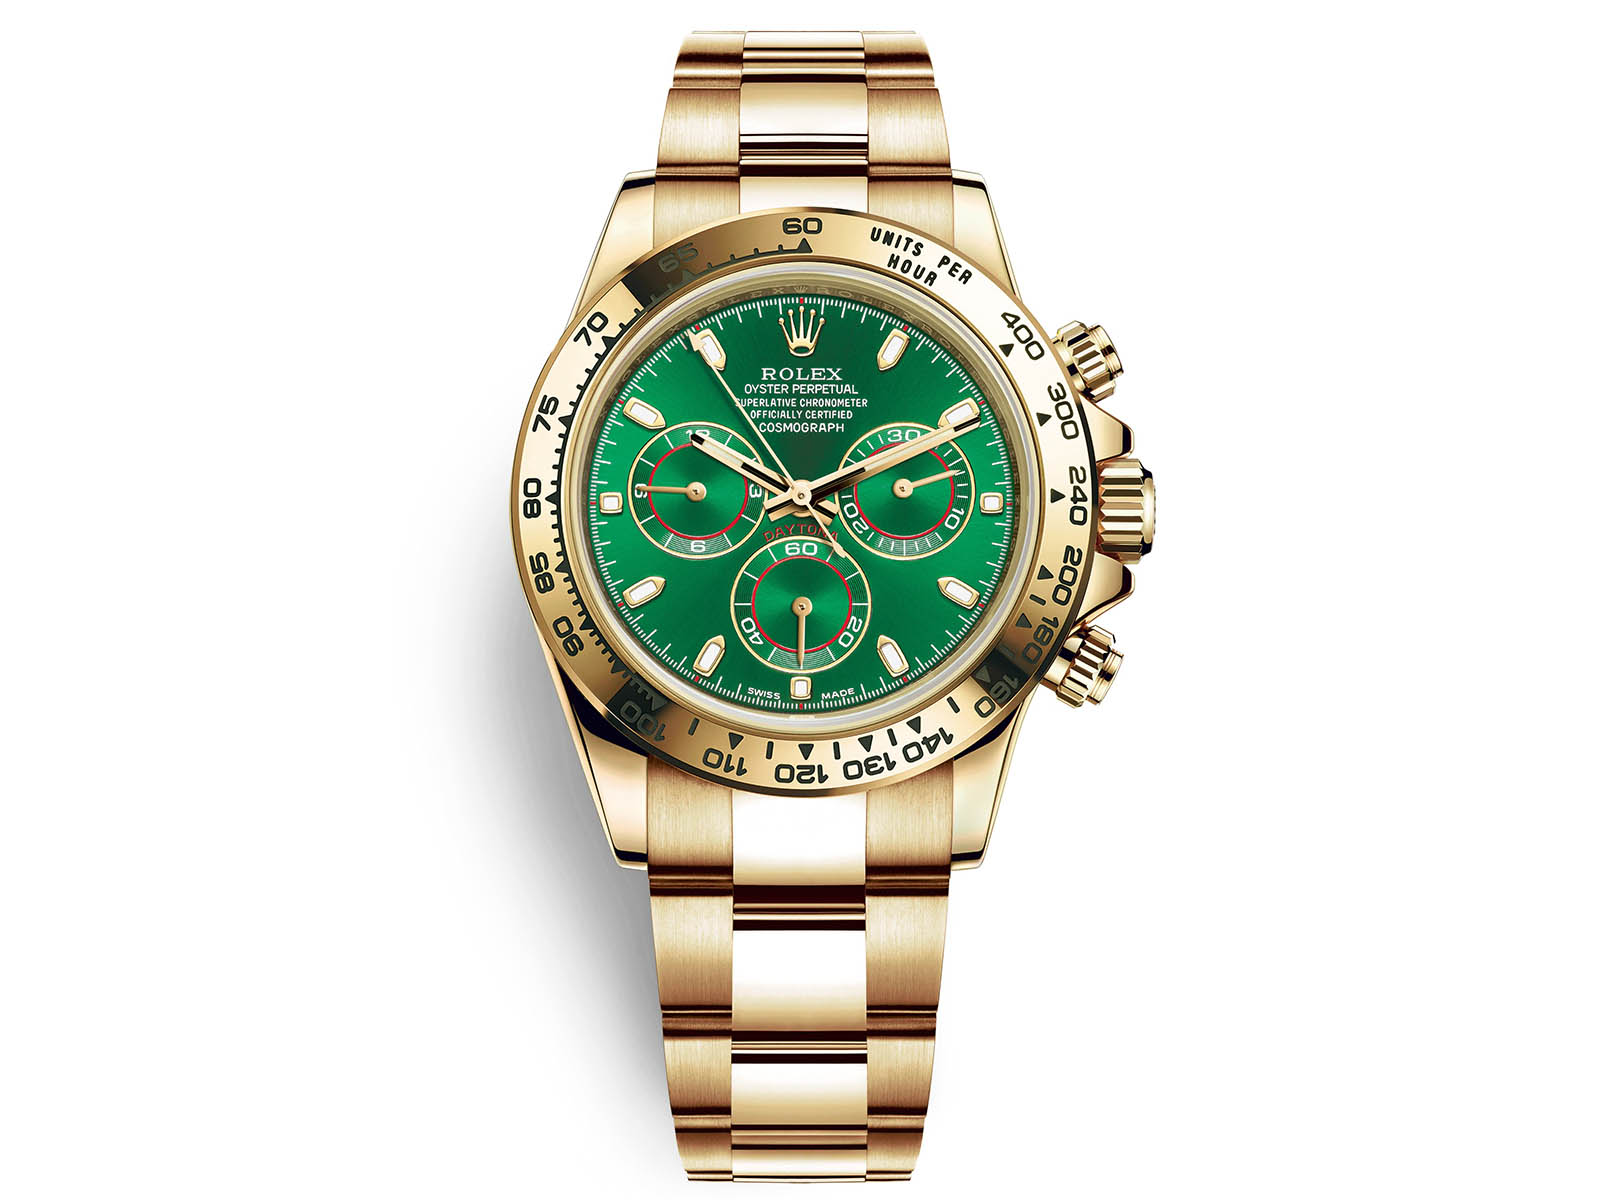 116508-rolex-daytona-yellow-gold-green-dial.jpg